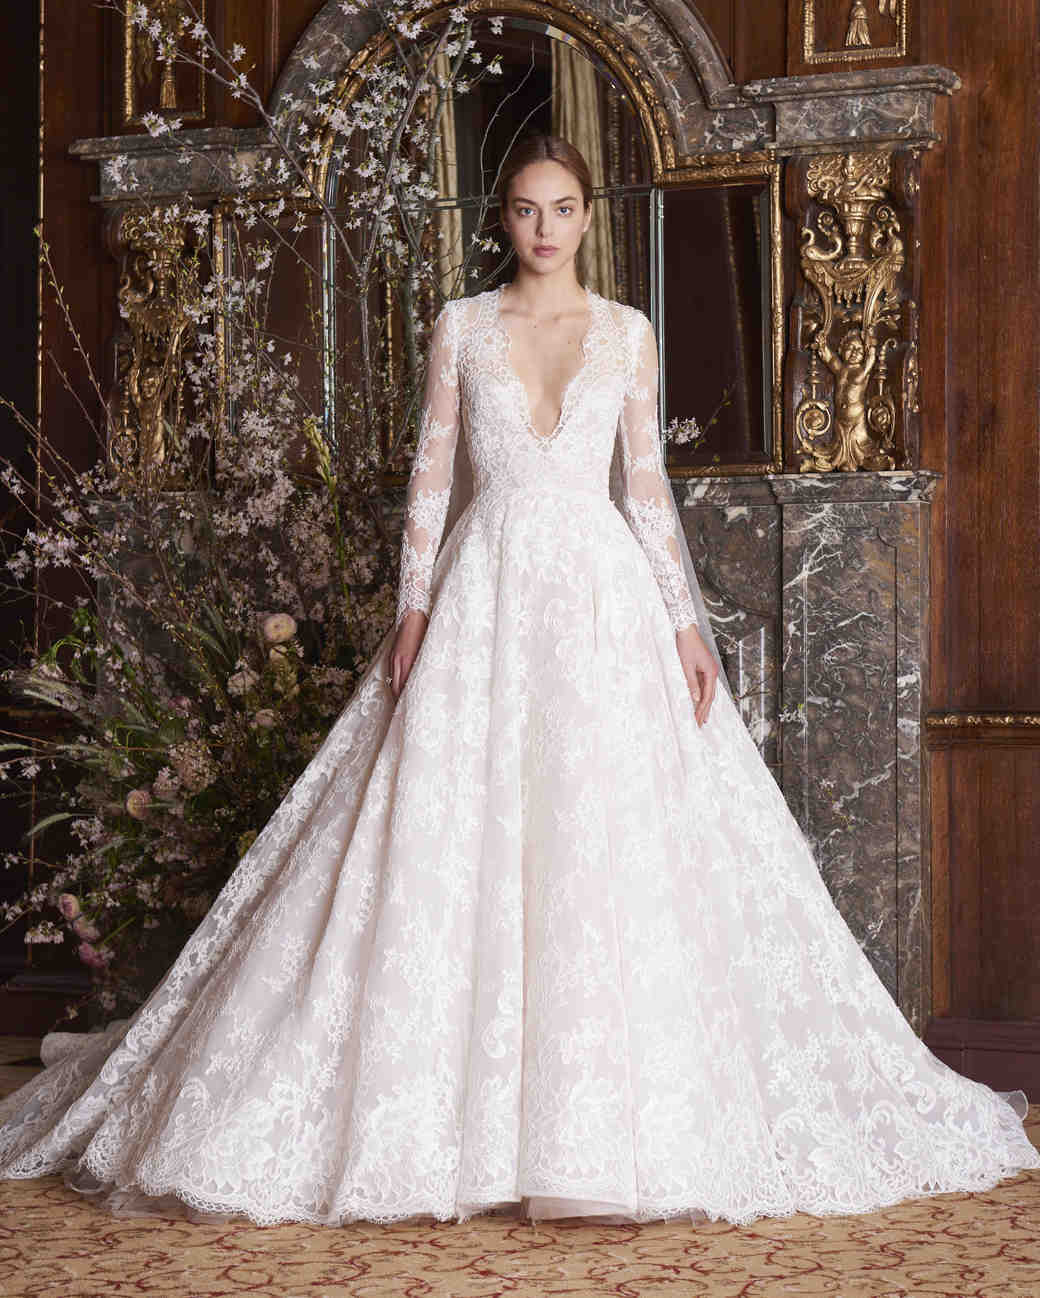 Bridal Dresses 2019: Long-Sleeved Wedding Dresses We Love